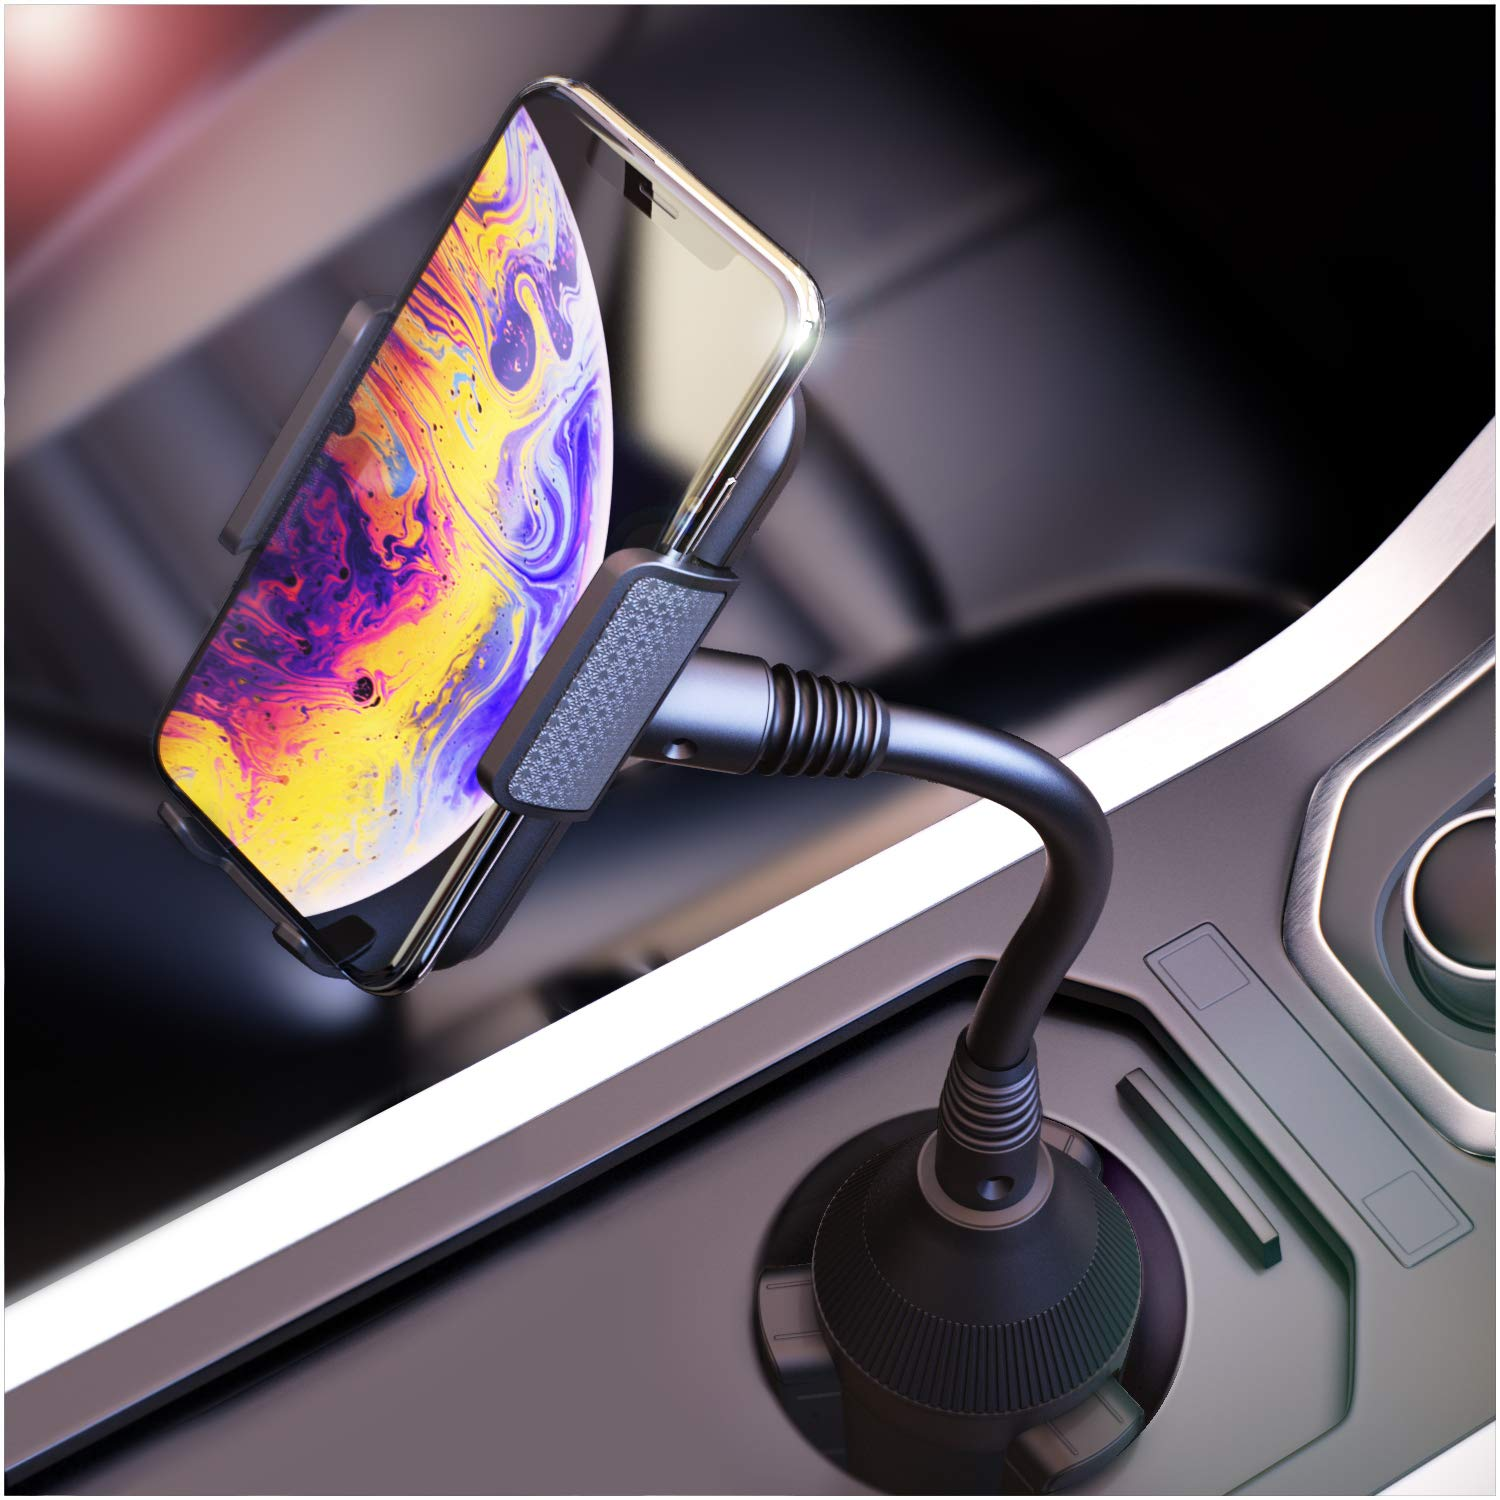 Phone Holder For Car, Cup Holder Phone Mount, Cell Phone Cup Holder for Car Compatible with iPhone Xs,XS MAX,XR,X,8,8Plus,7,7Plus,6,6Plus, Galaxy S7,8,9,10, Google and all smartphones by Bestrix by Bestrix